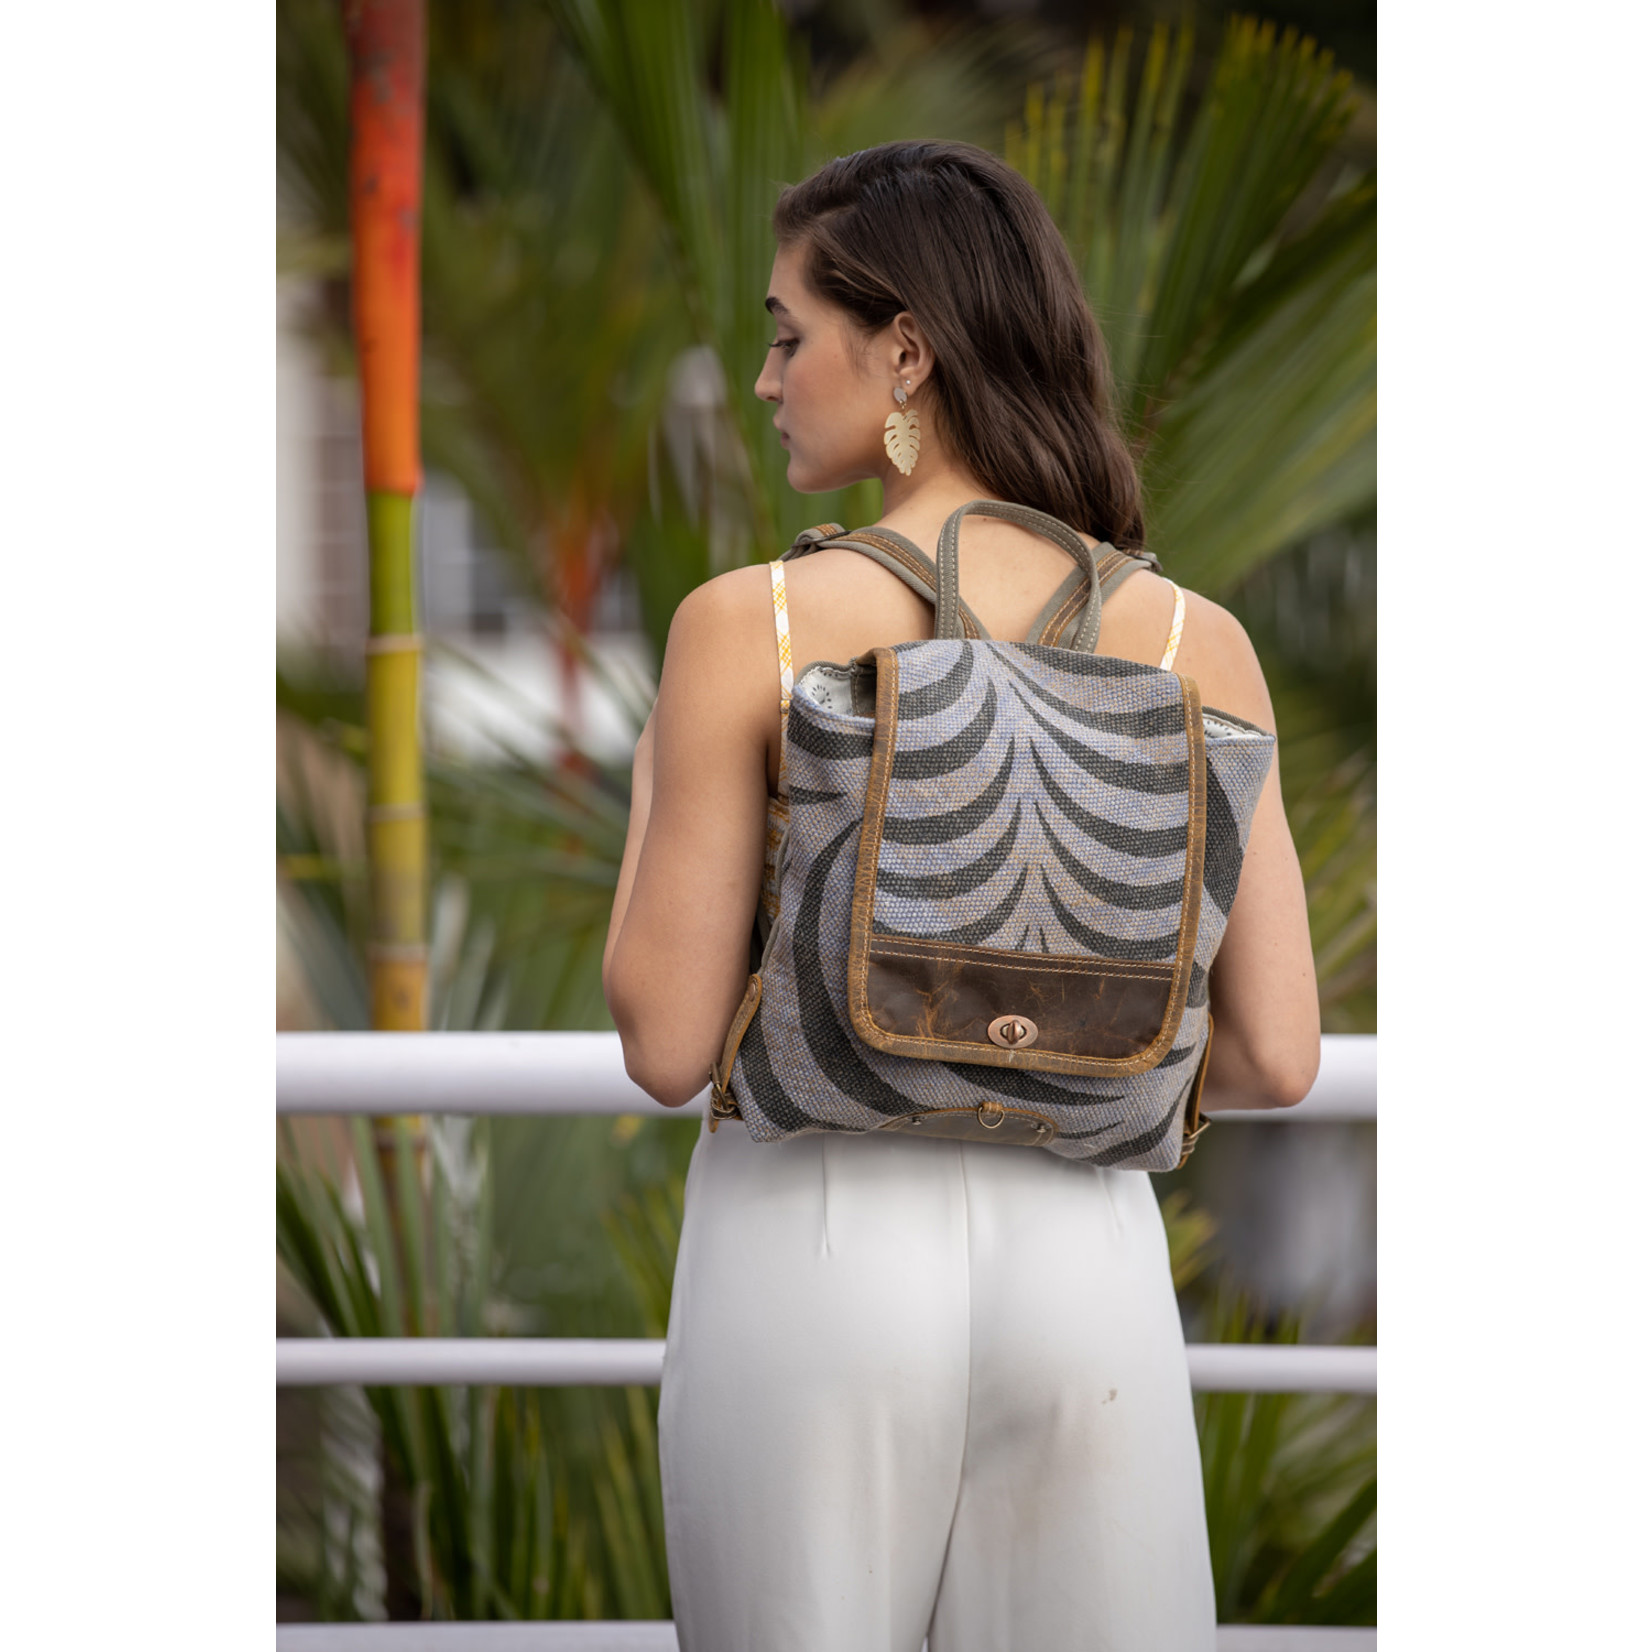 Myra Bags S-2203 Grey Tranquility Backpack